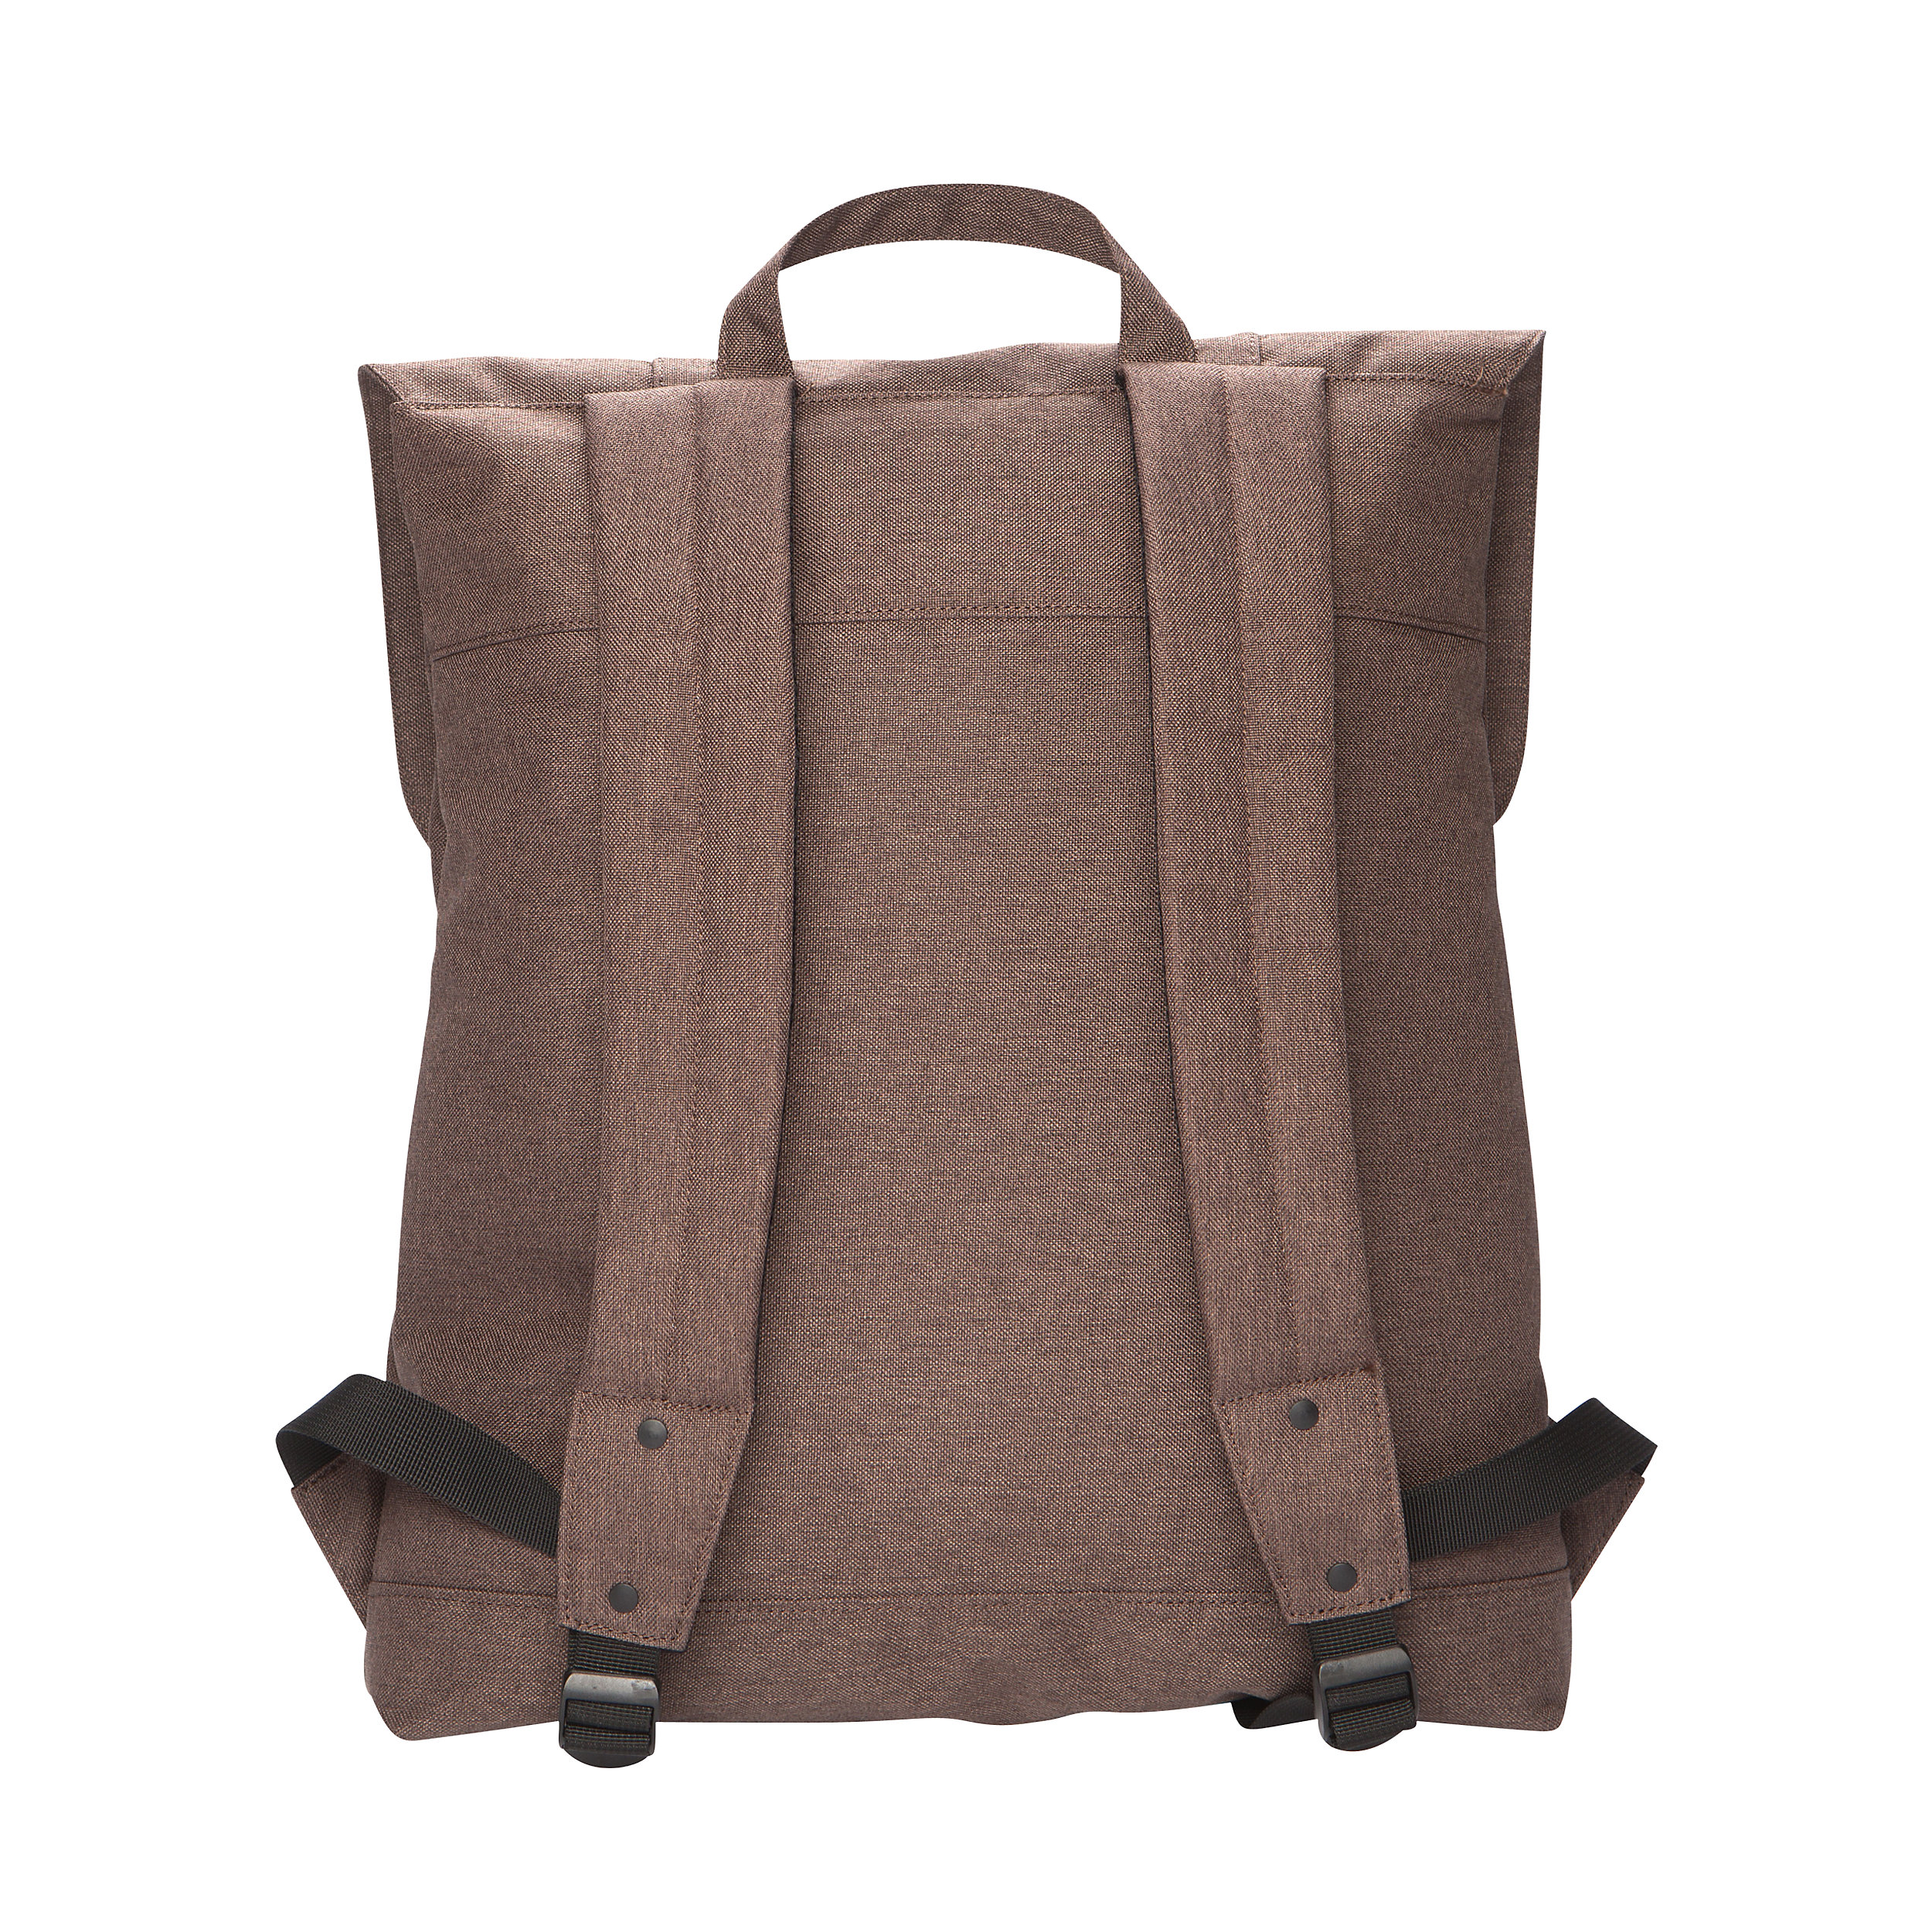 Rucksack City Backpack Lifestyle Collection S 12 Liter